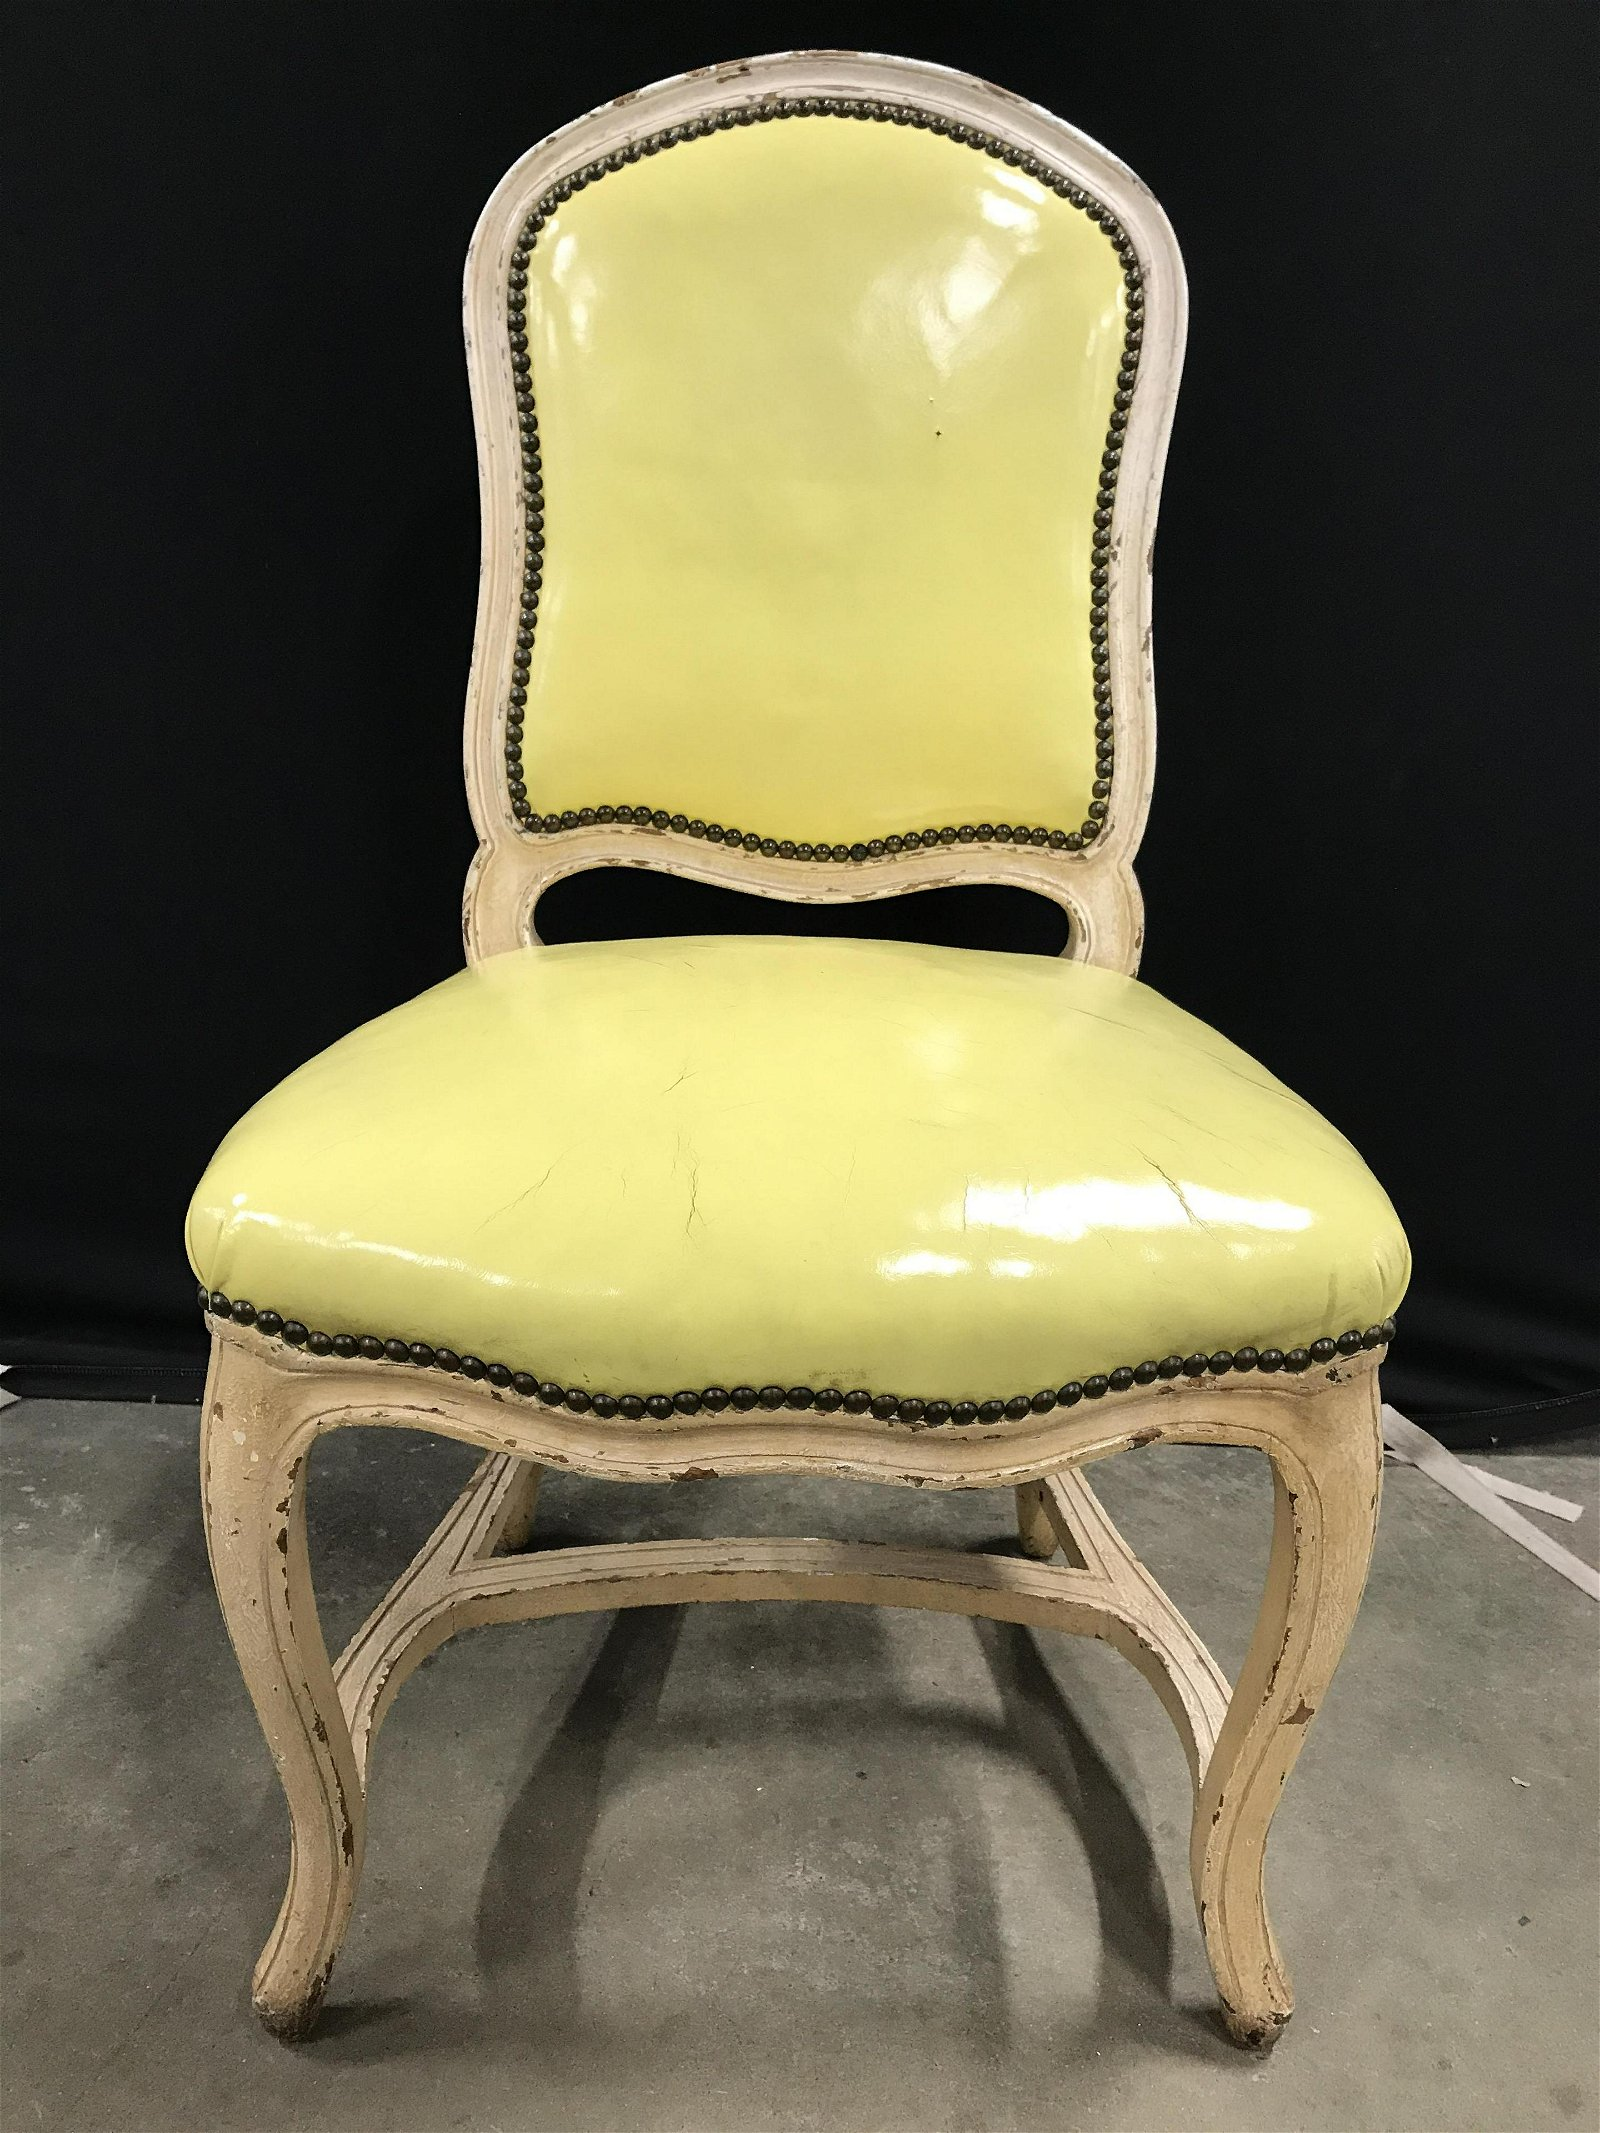 4 Carved Wooden Dining Chairs, Leather Style